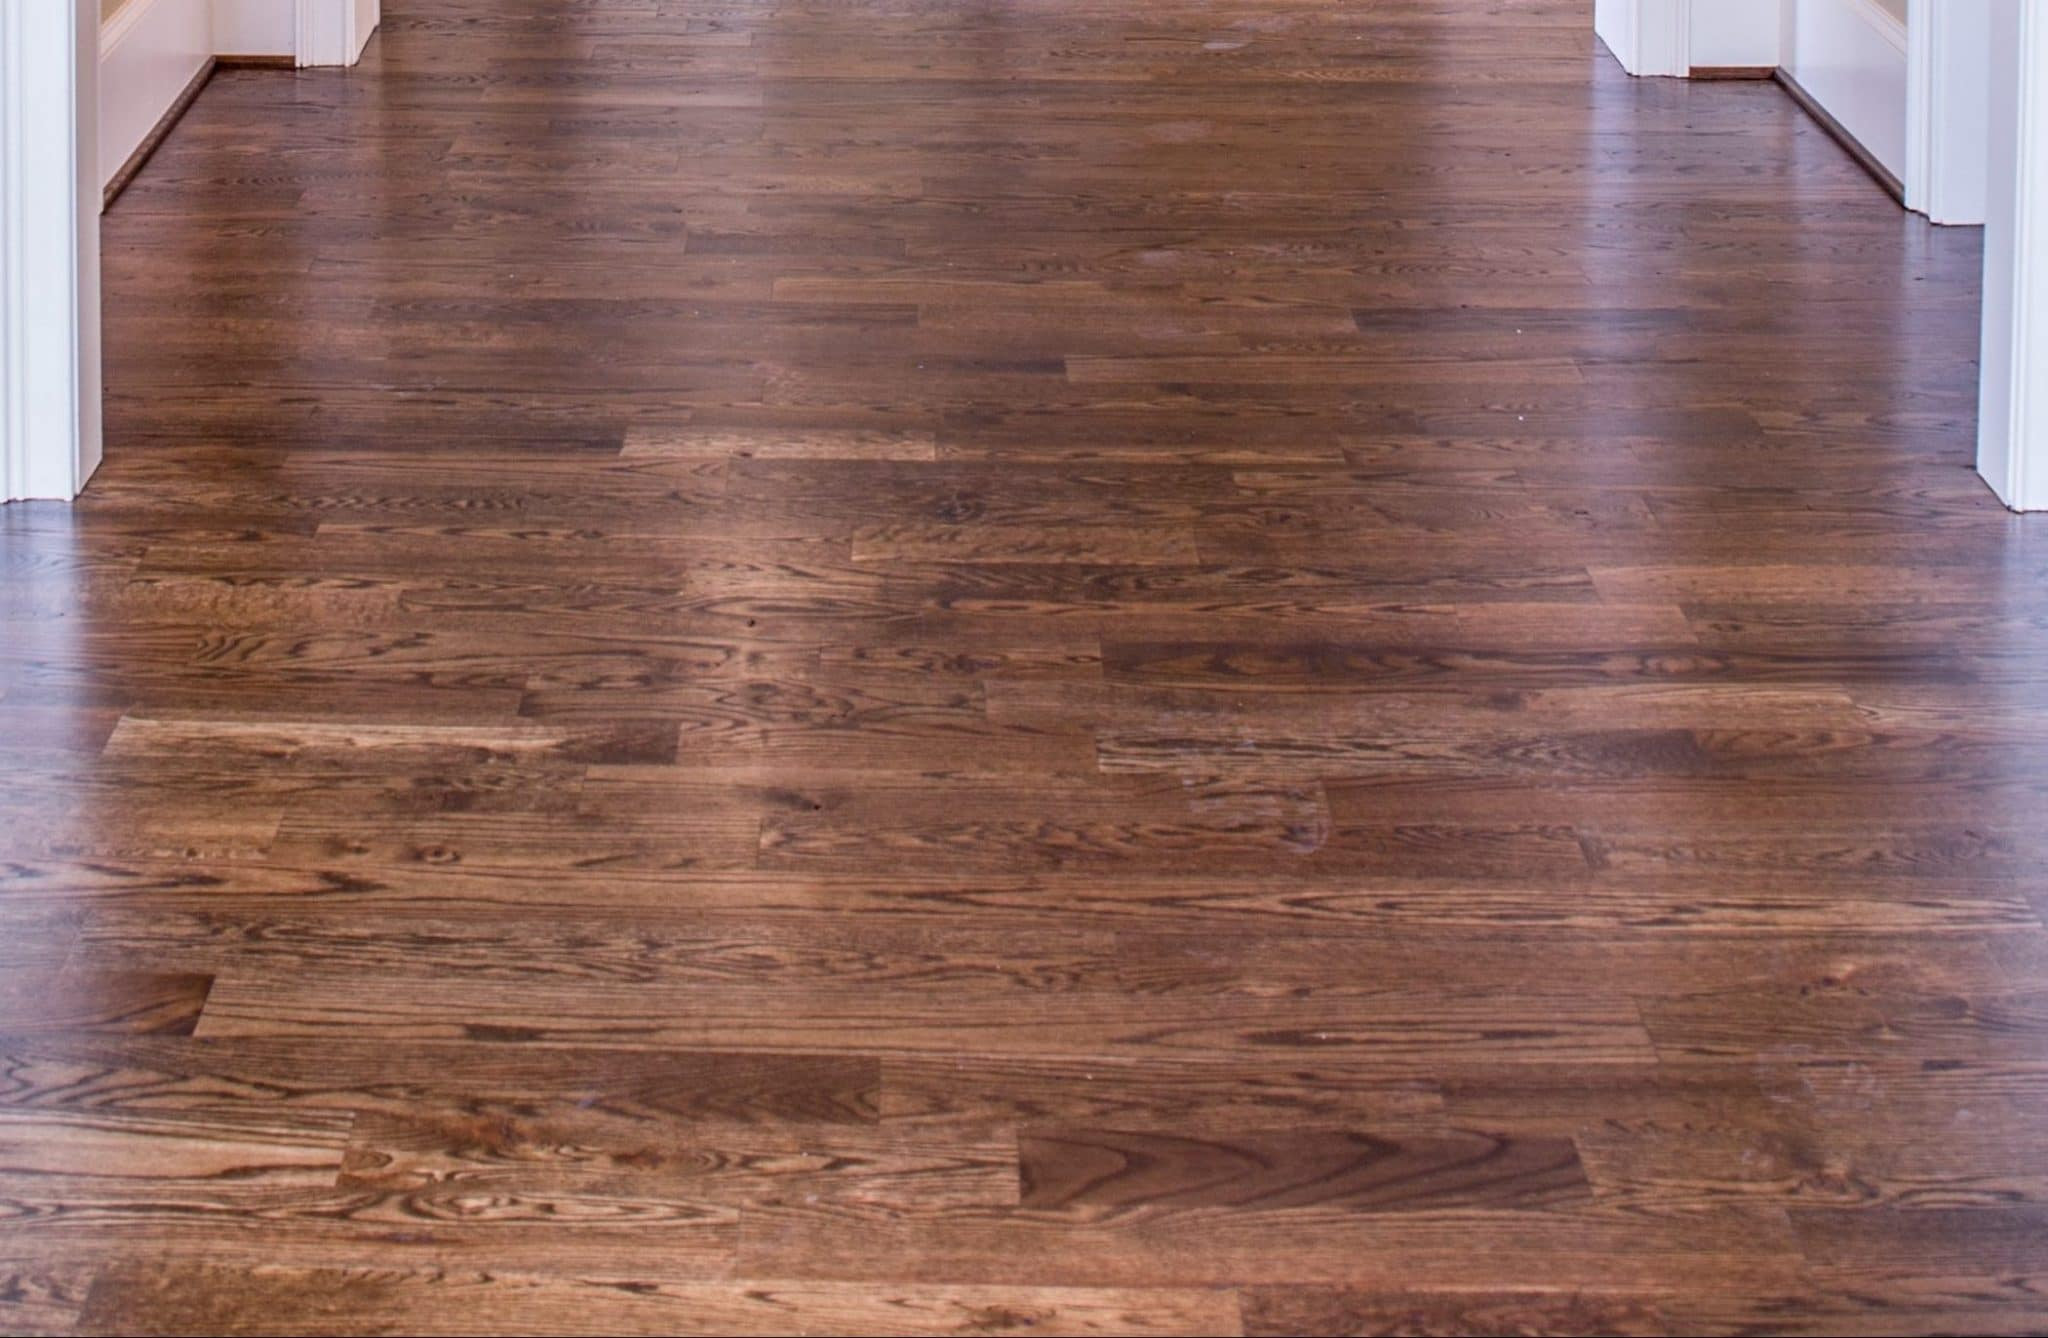 17 Nice How To Use Bona Hardwood Floor Cleaner Unique Flooring Ideas